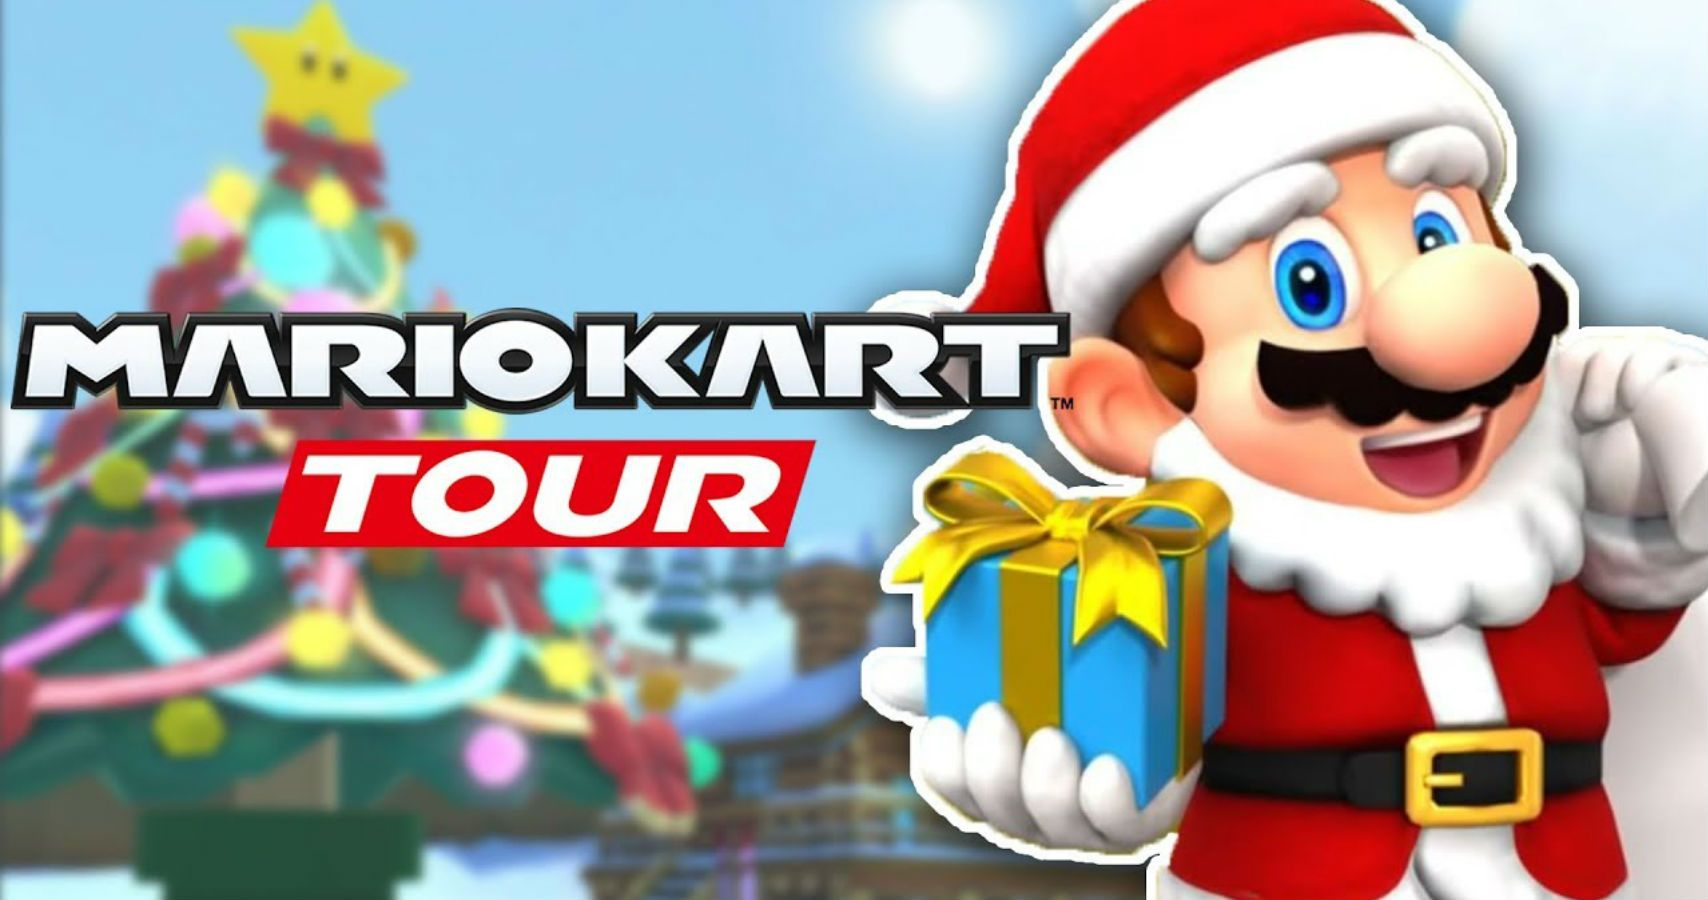 Mario Kart Tour Is Ringing In The New Year With Some Amazing Cosmetics And Tons Of Holiday Fun, Celebrate The Games Success In The Holiday Tour